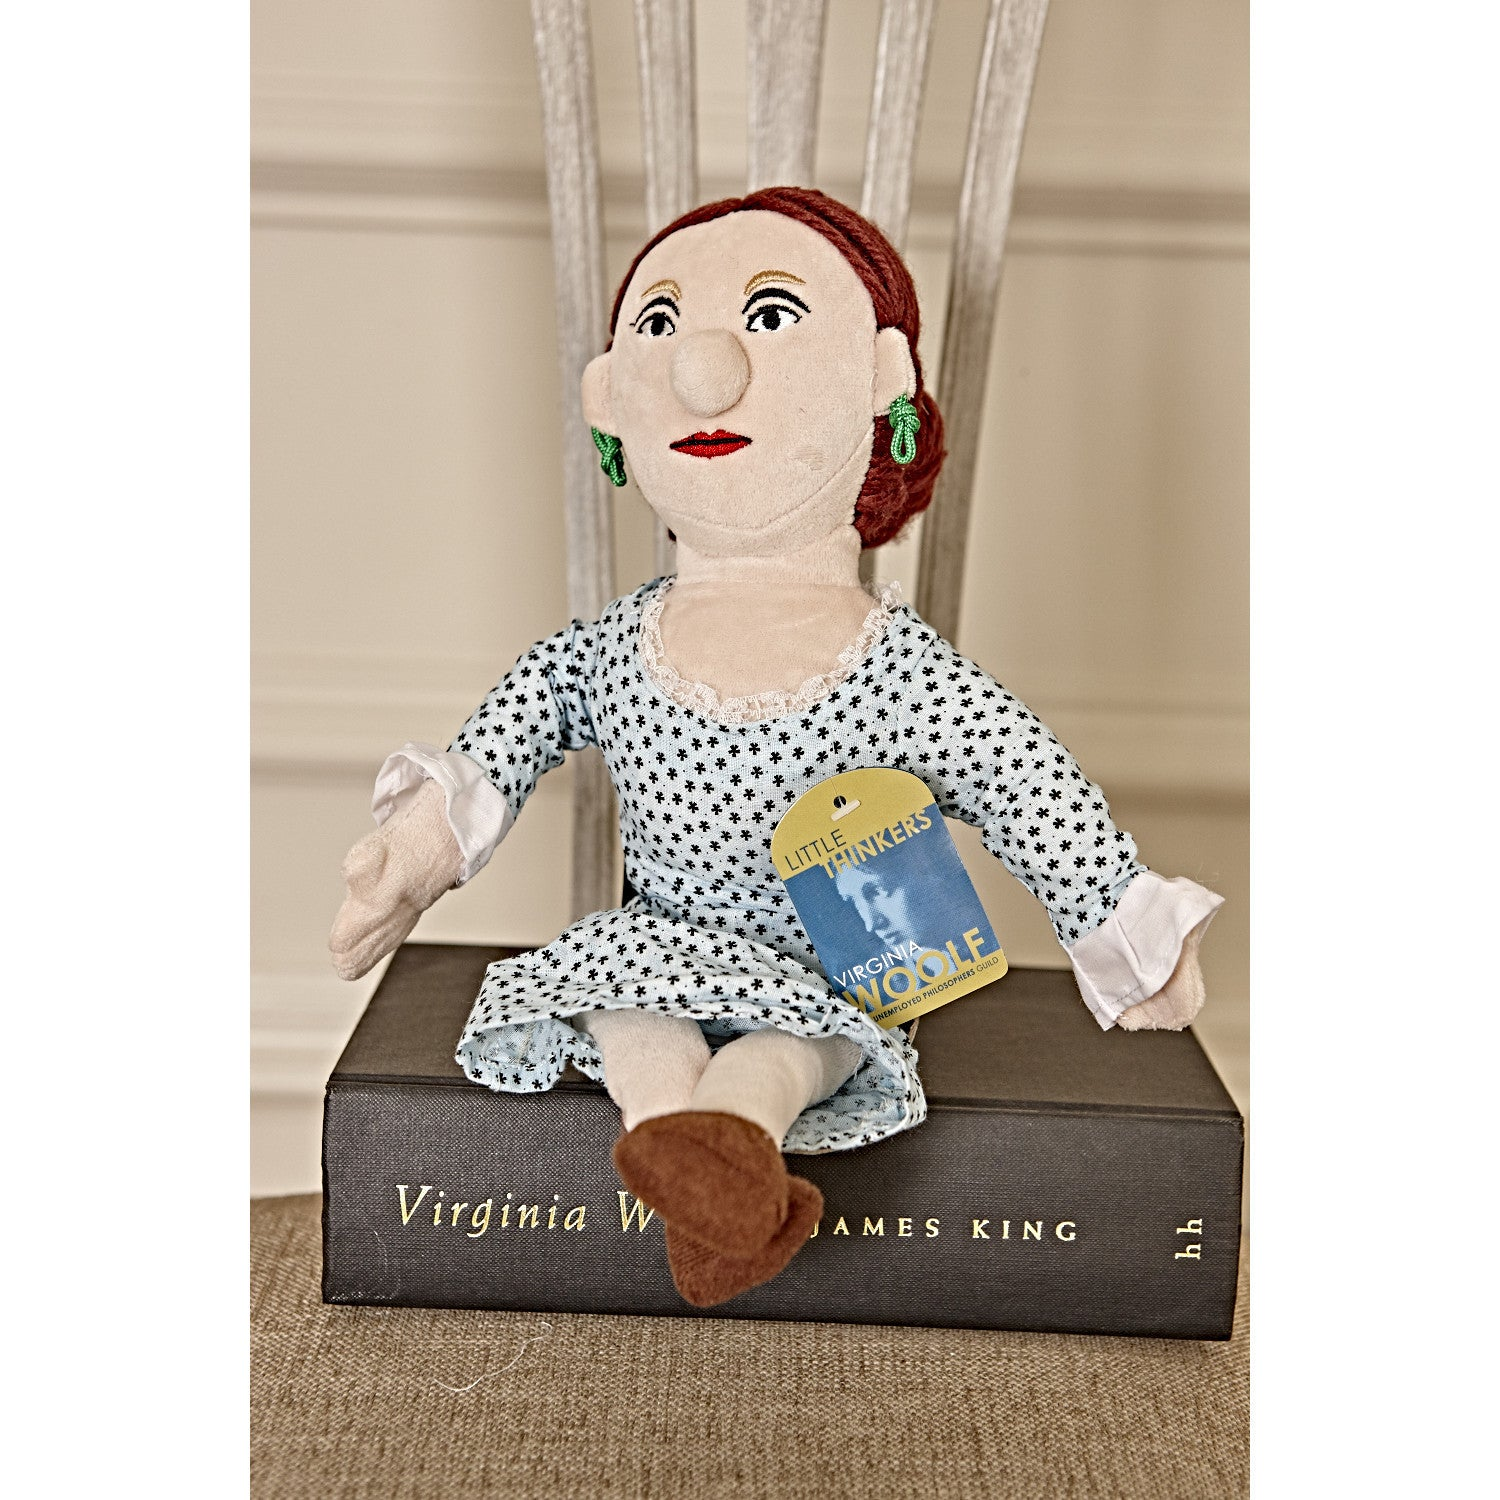 Virginia Woolf - Little Thinker Doll sitting on book